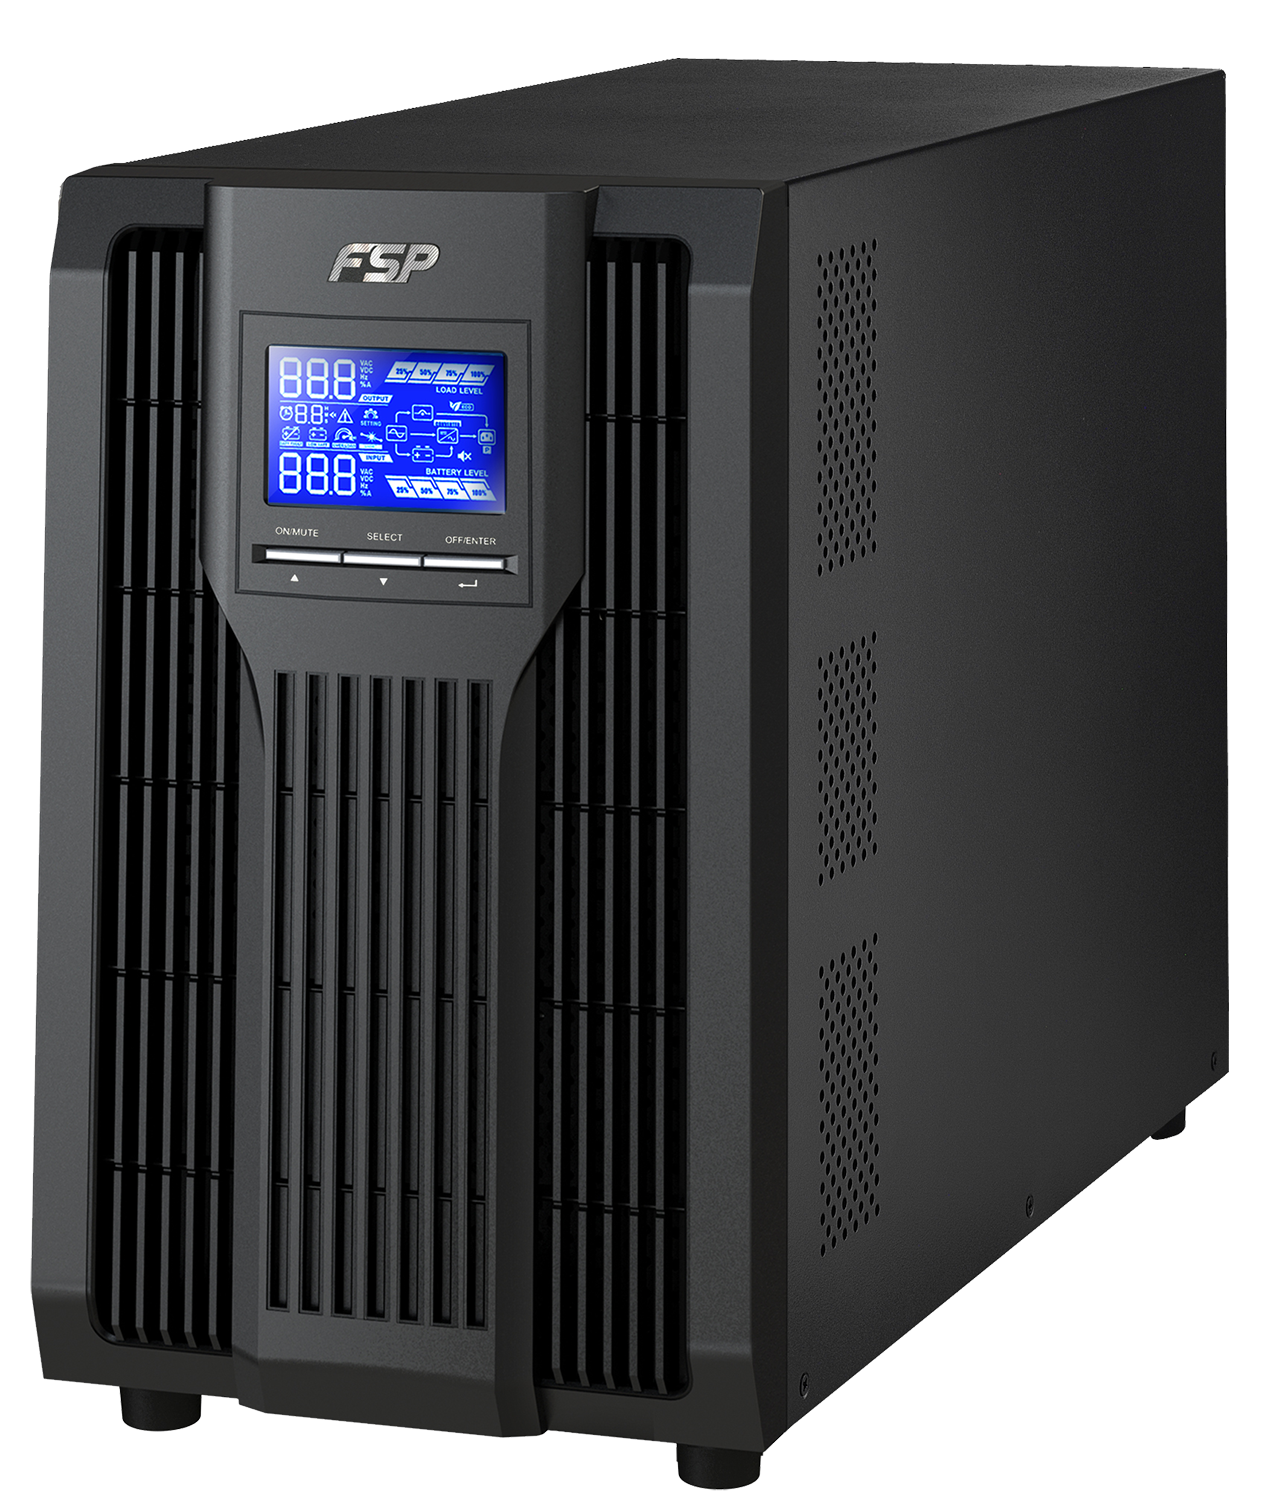 FSP/Fortron UPS CHAMP 3000 VA tower, online